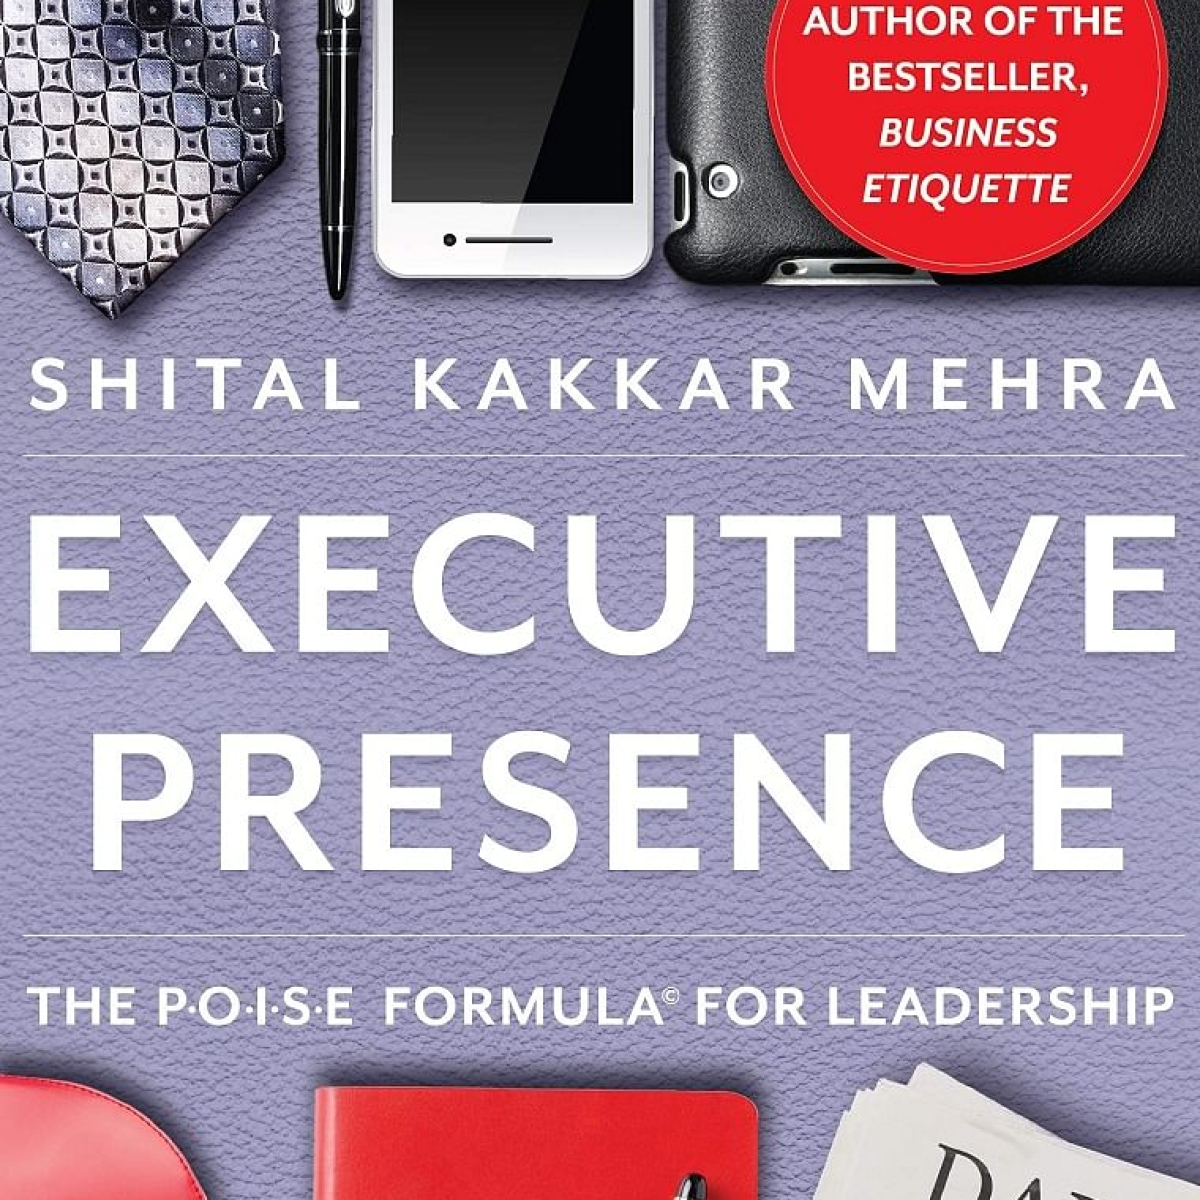 Executive Presence Book Review: Shital Mehra Kakkar decodes corporate life for all